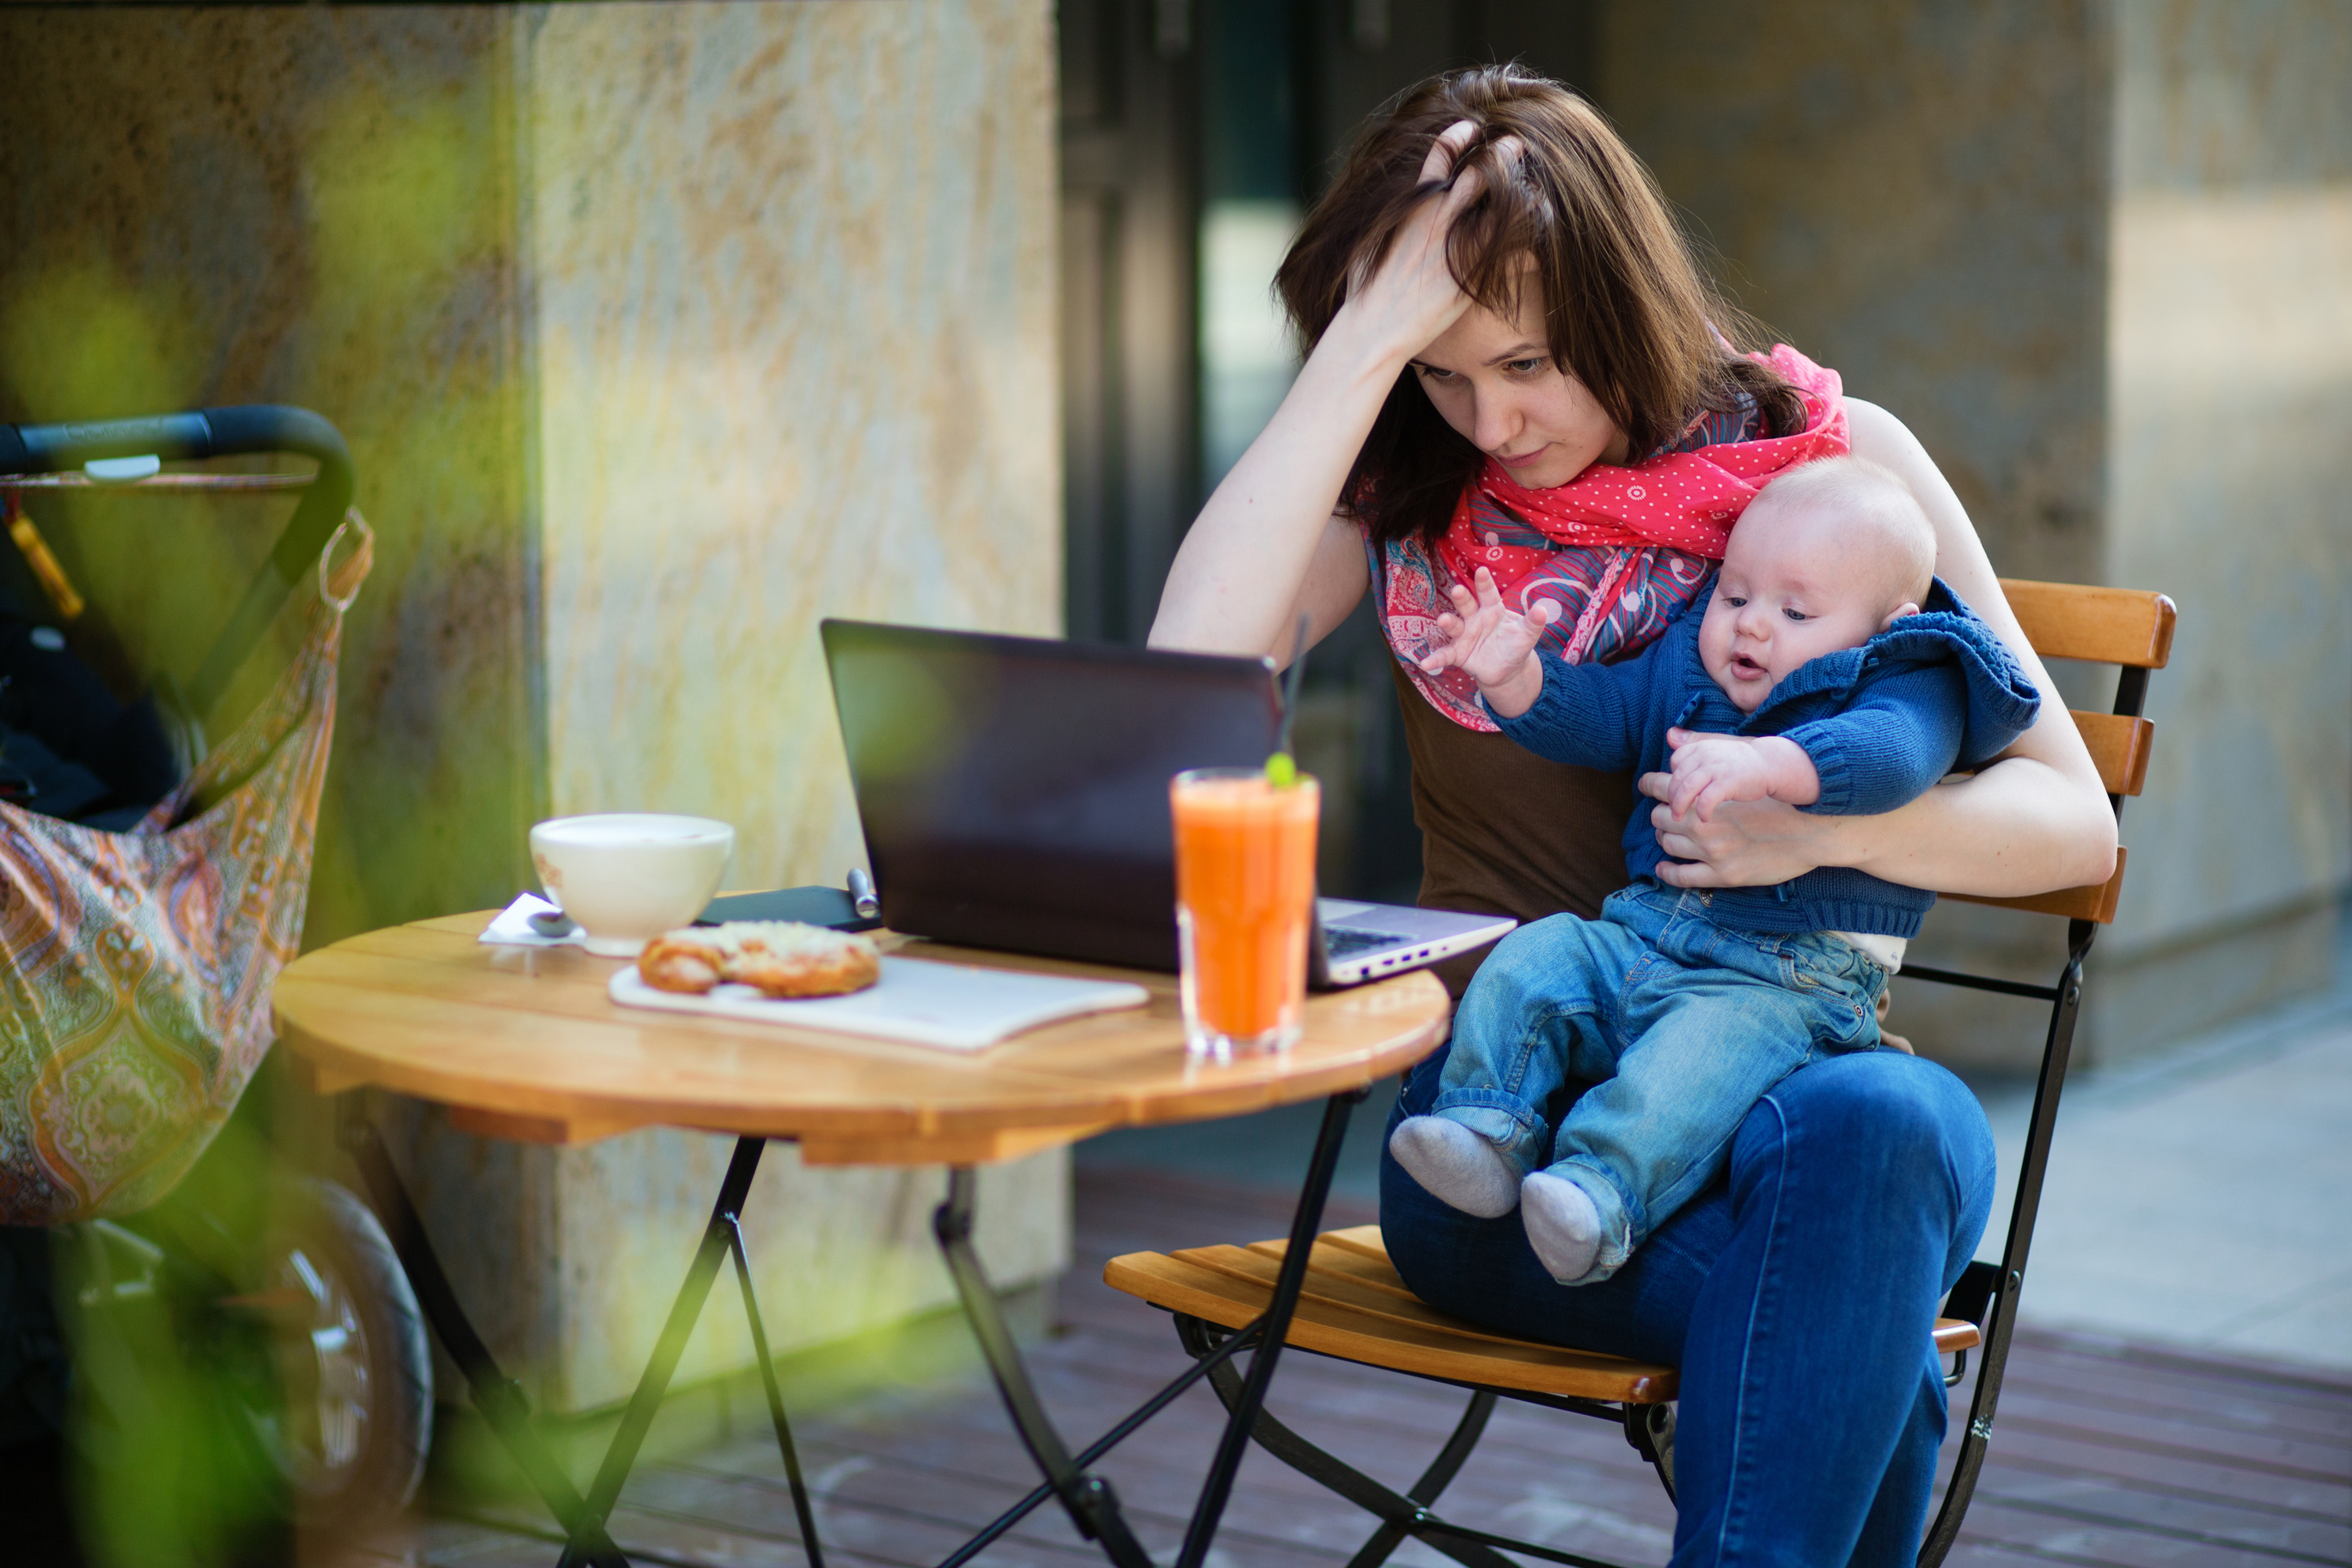 Happy Mother's Day: Now Get Back to Work!